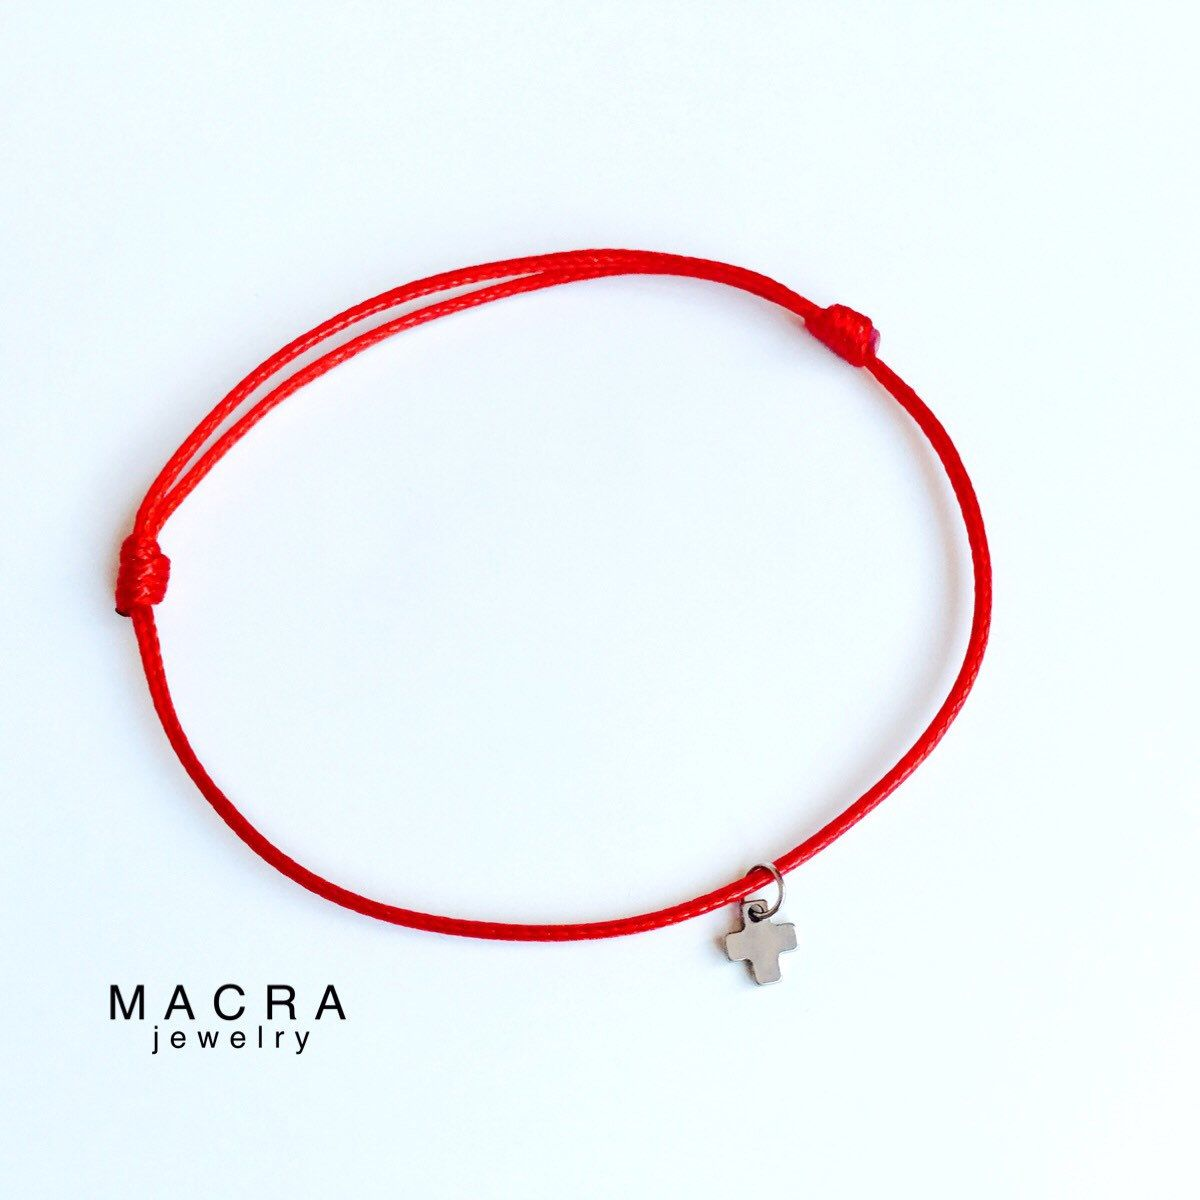 b285833248682f Red String bracelet with Stainless steel cross charm. Red String Kabbalah  bracelet. Red string. Lucky Charms. Unisex-Man ,Women,Baby.